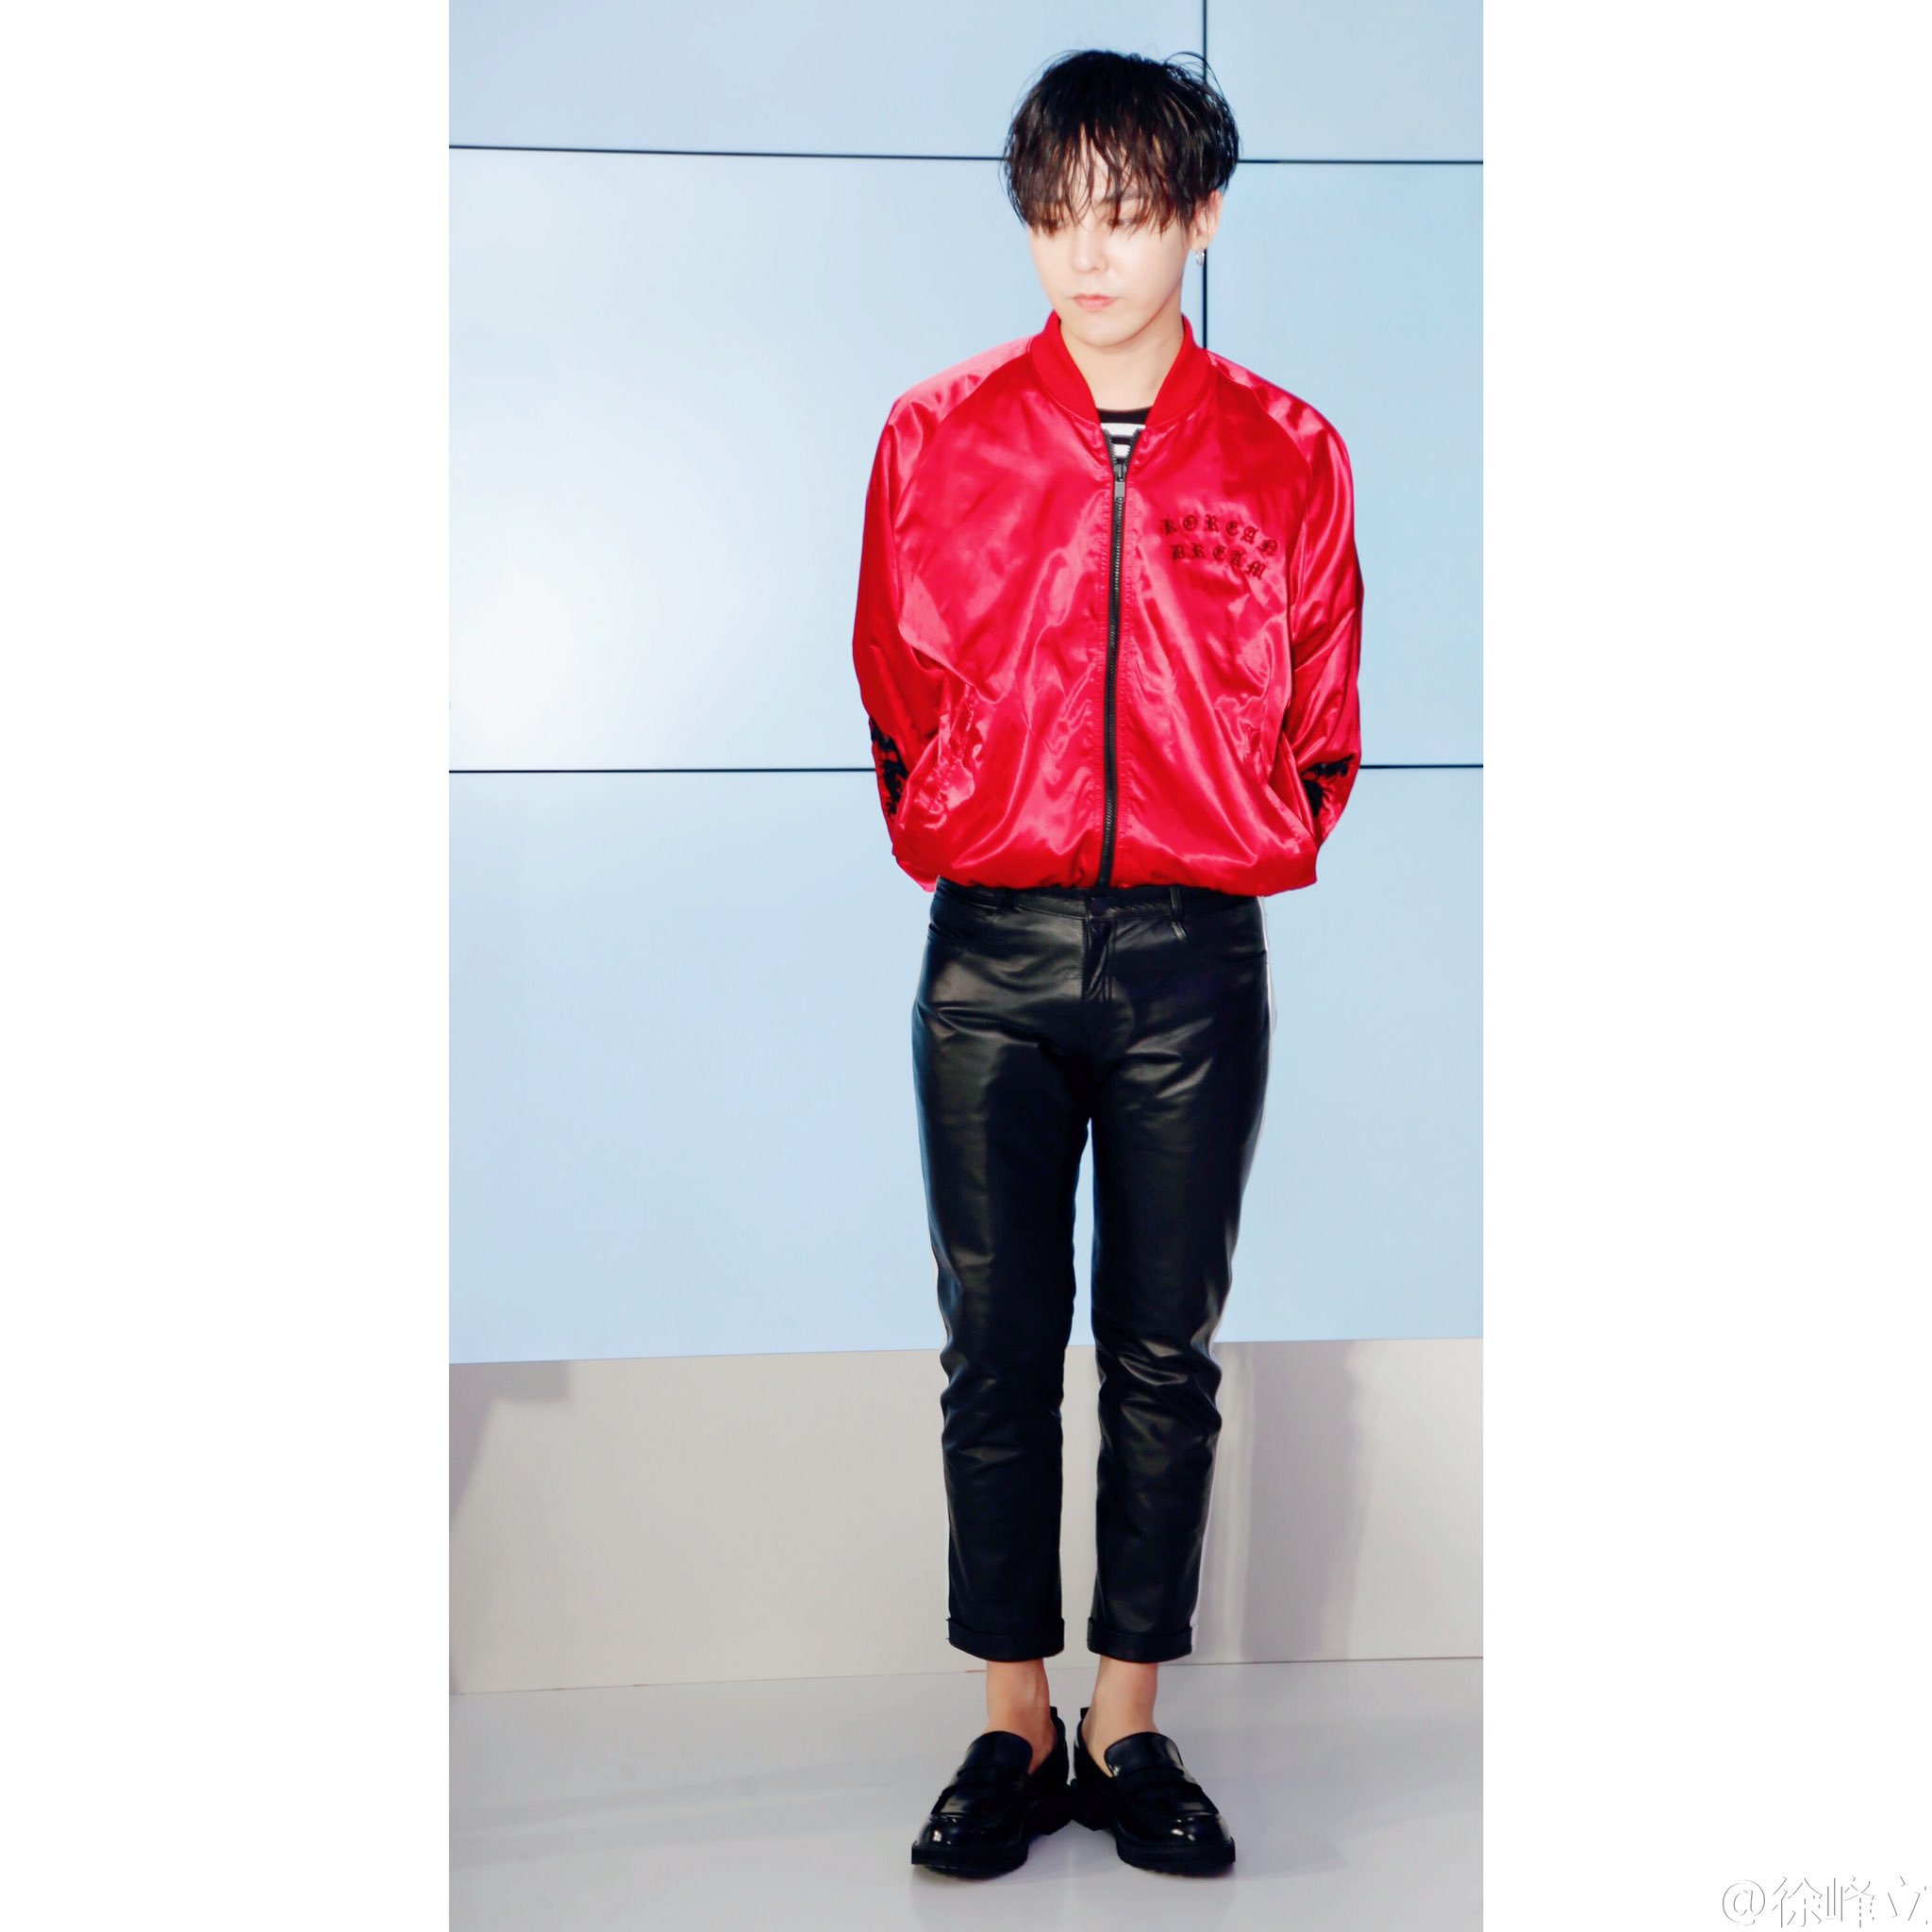 gd-store-opening-shanghai-2016-09-29-20